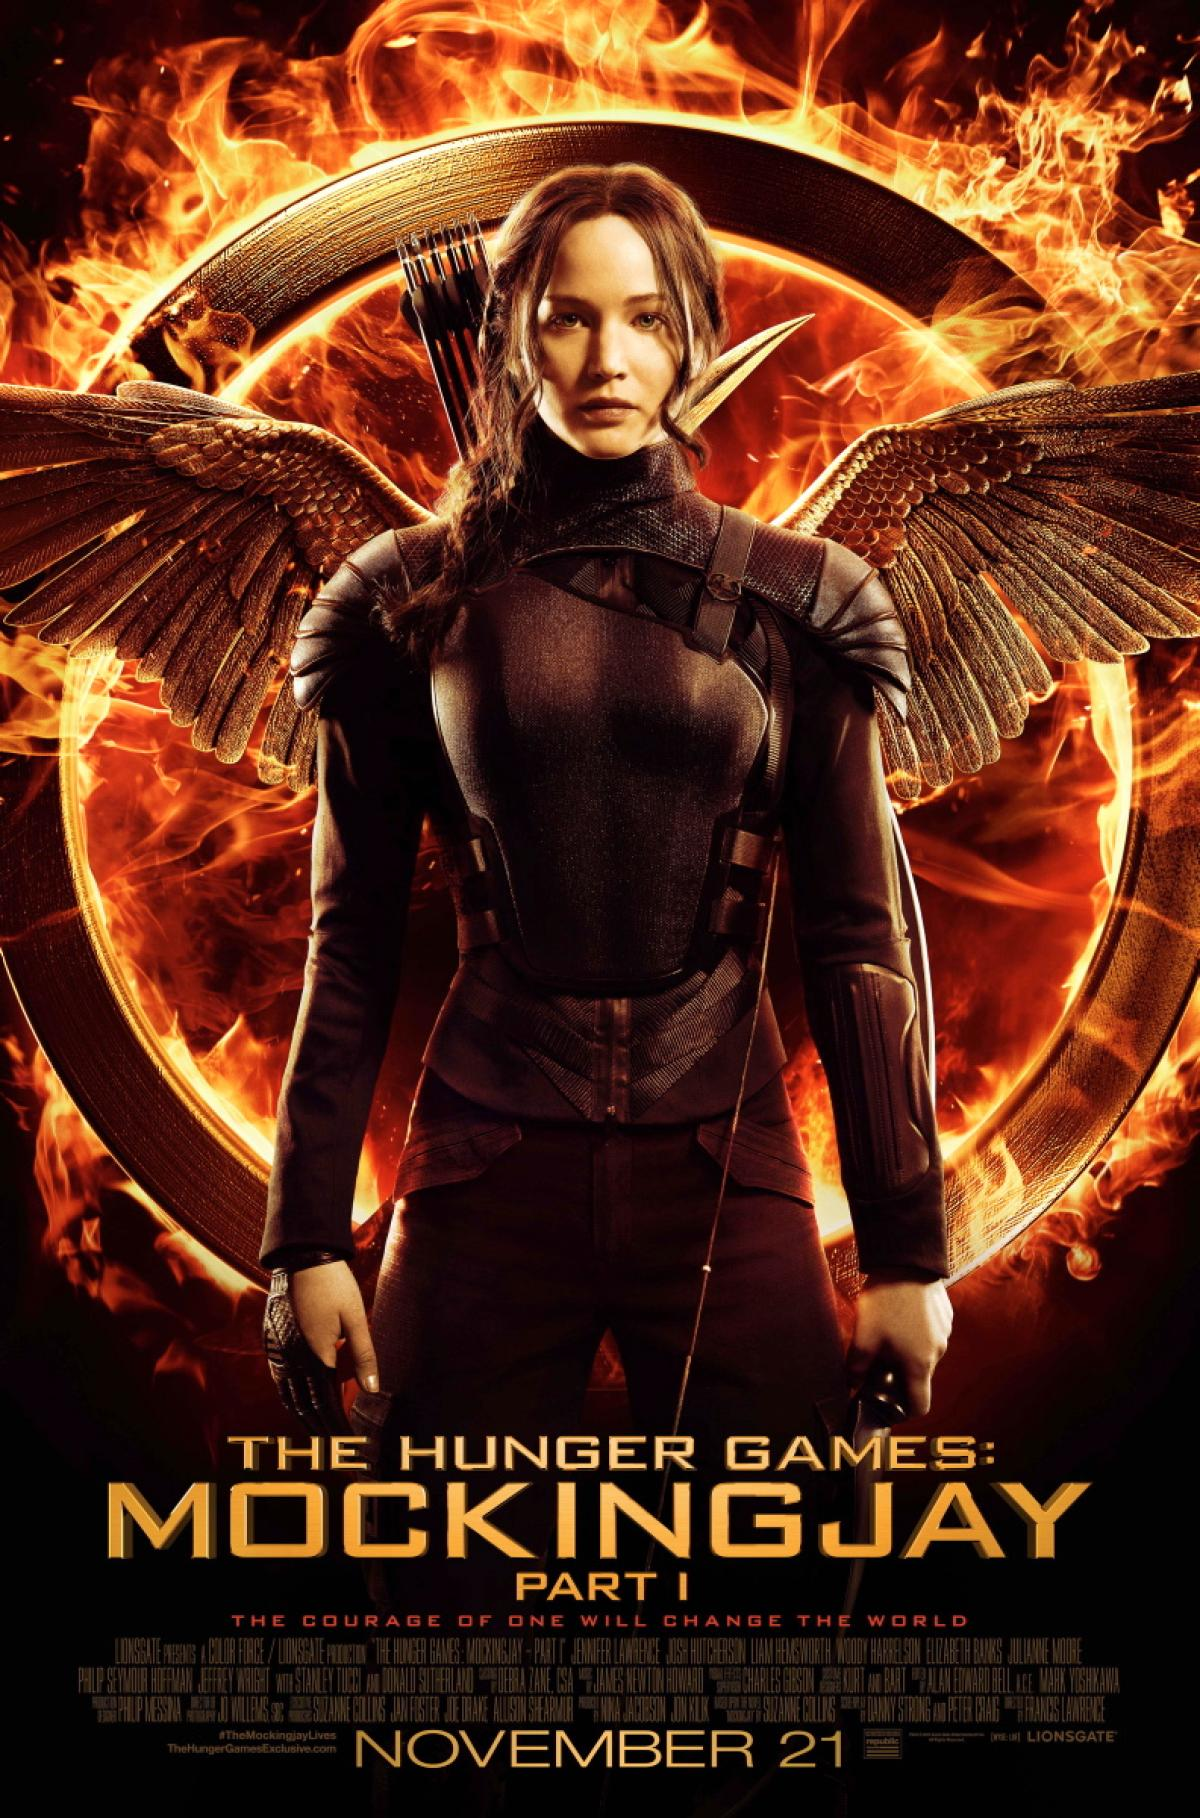 The movie poster for The Hunger Games: Mockingjay - Part 1 has the symbolic mockingjay pin in the background. The pin also appears throughout the movie and after the end credits, which begin by dedicating the movie to actor Philip Seymour Hoffman, who passed away before the film premiered.